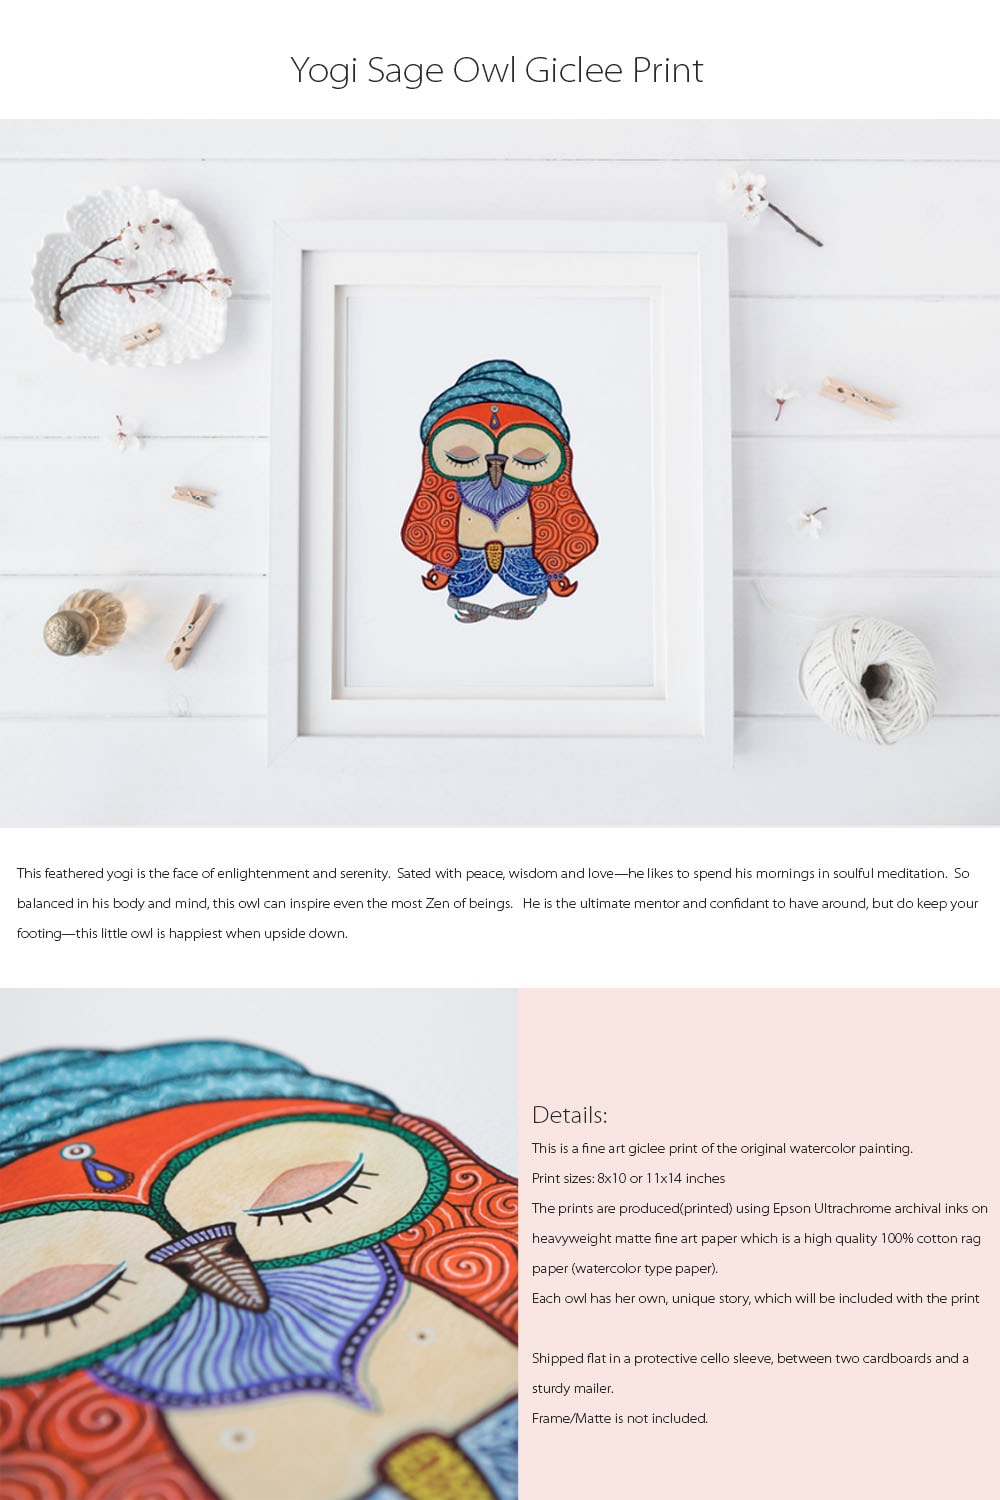 Character Owls Giclee Print Each Owl Has His/Her Own, Unique Story